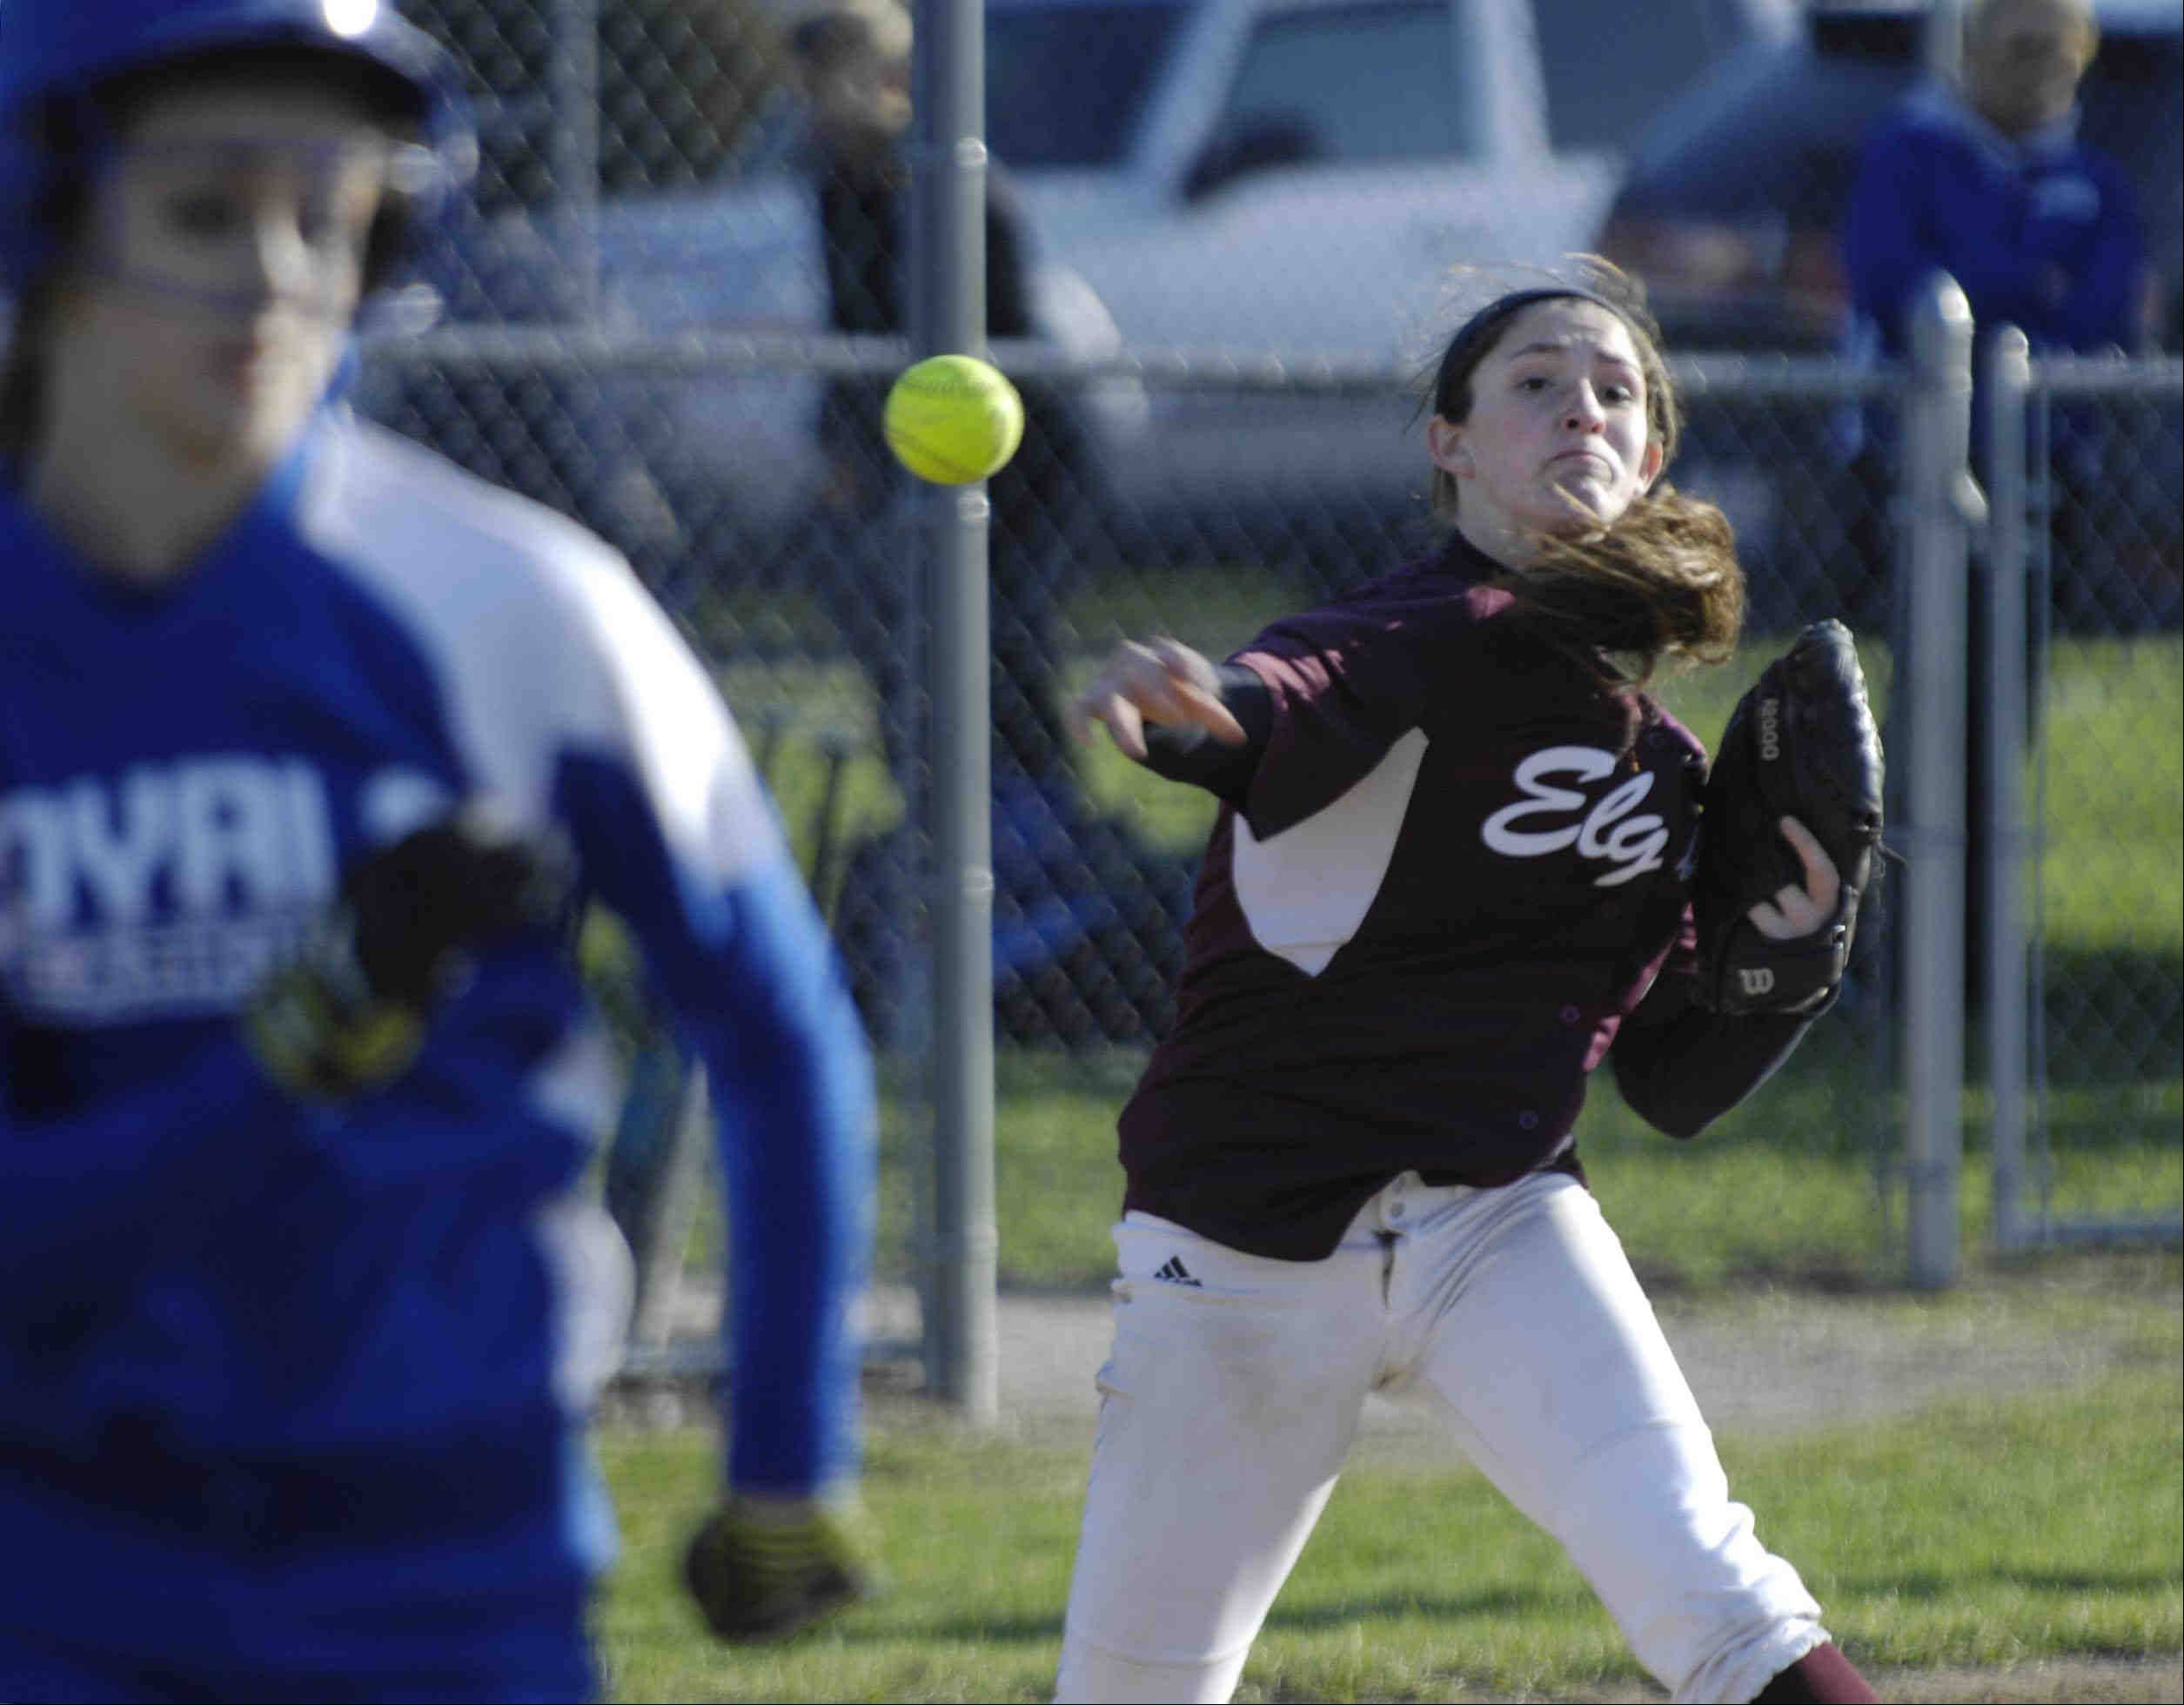 Elgin pitcher Jennah Perryman throws out Larkin hitter Sam Wahl to preserve her no-hitter in the last inning Wednesday in Elgin.